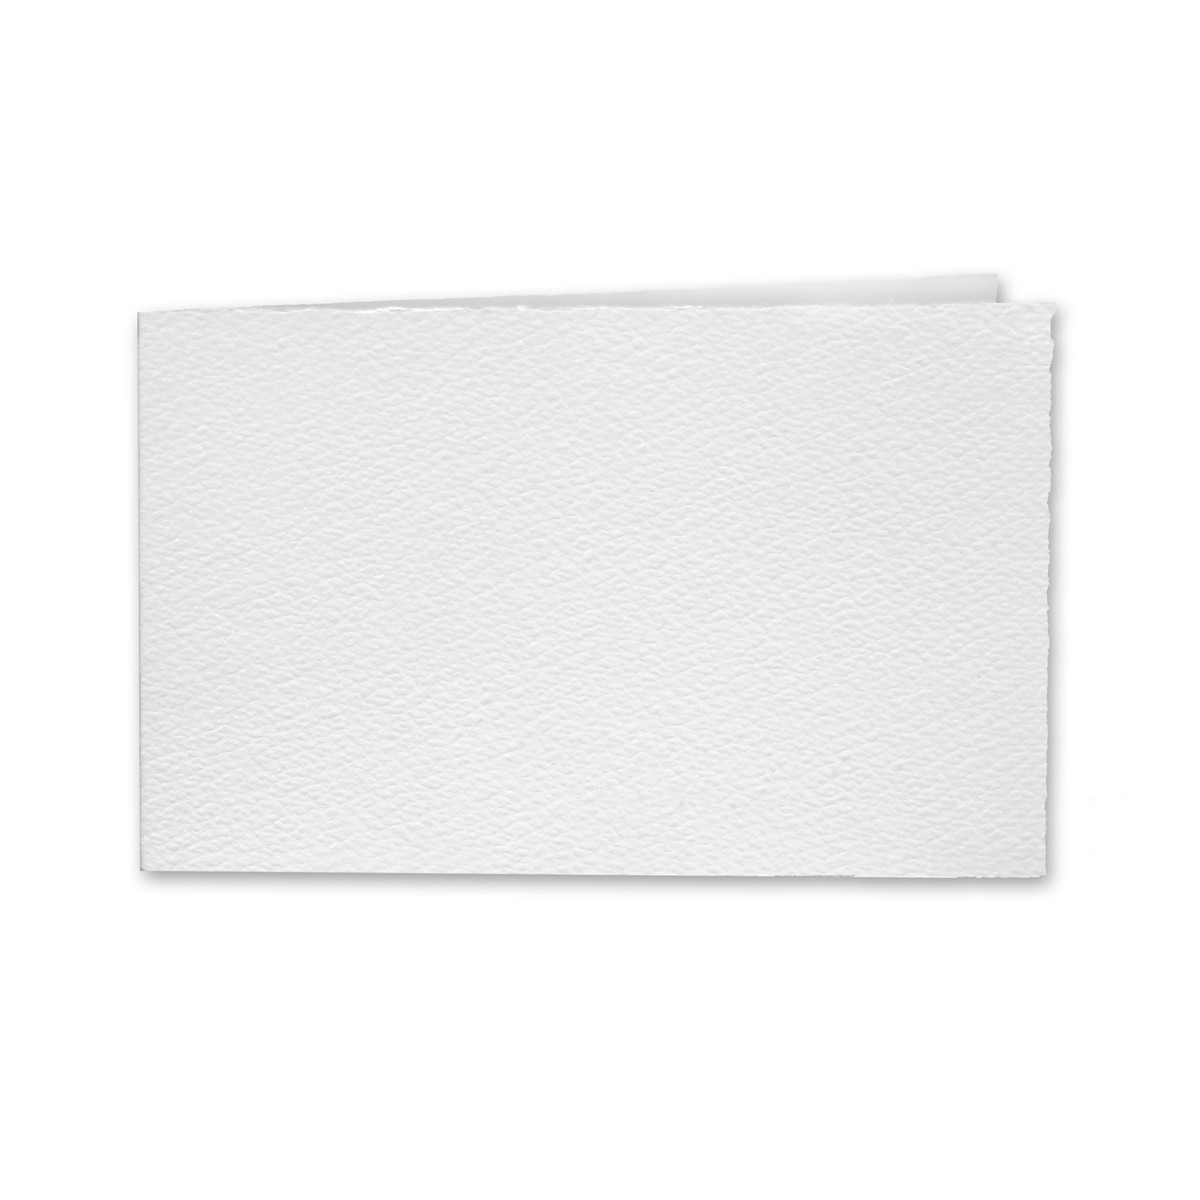 "Arturo White Album Foldovers (600AC) 97# Cover (4.53"" x 13.39"" open size) Pack of 50"